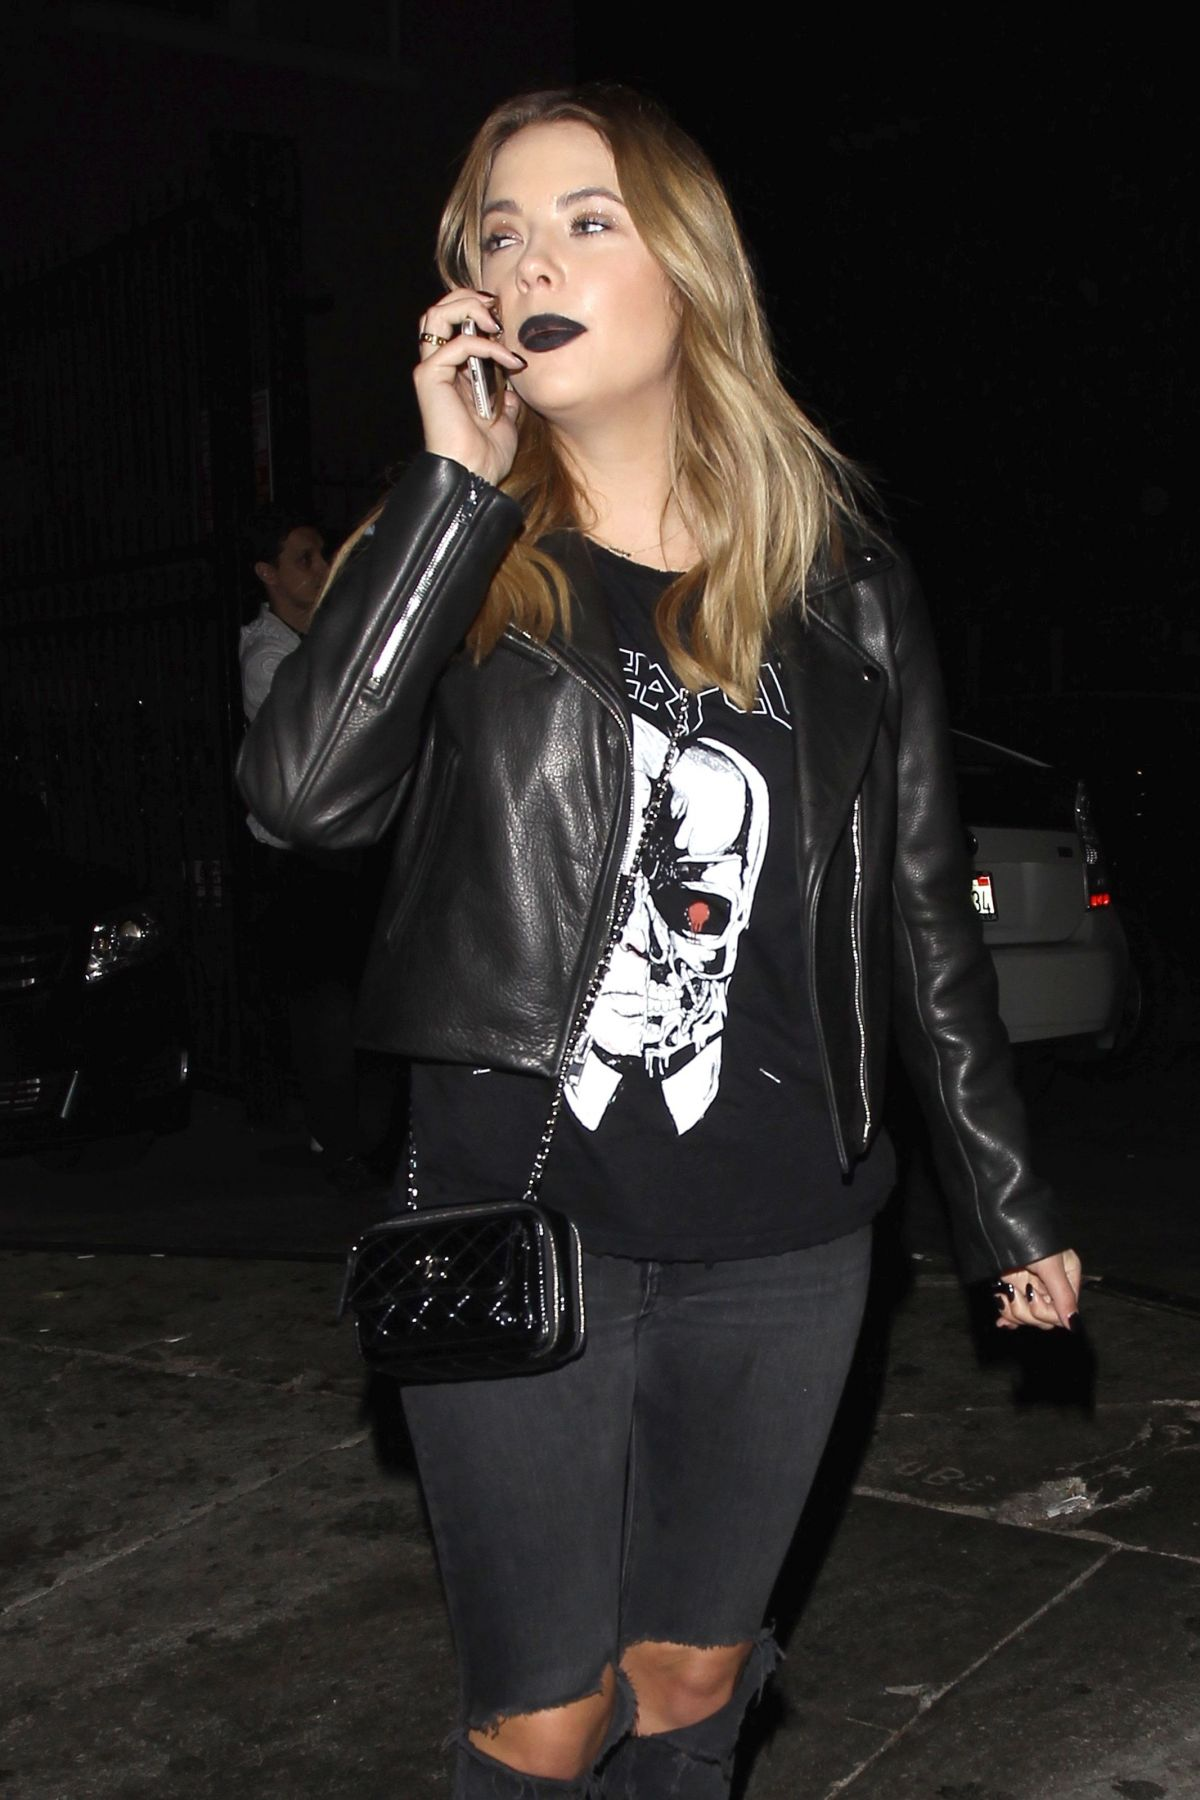 ashley benson at just jared halloween party in hollywood 10312015 - Halloween Parties In Hollywood